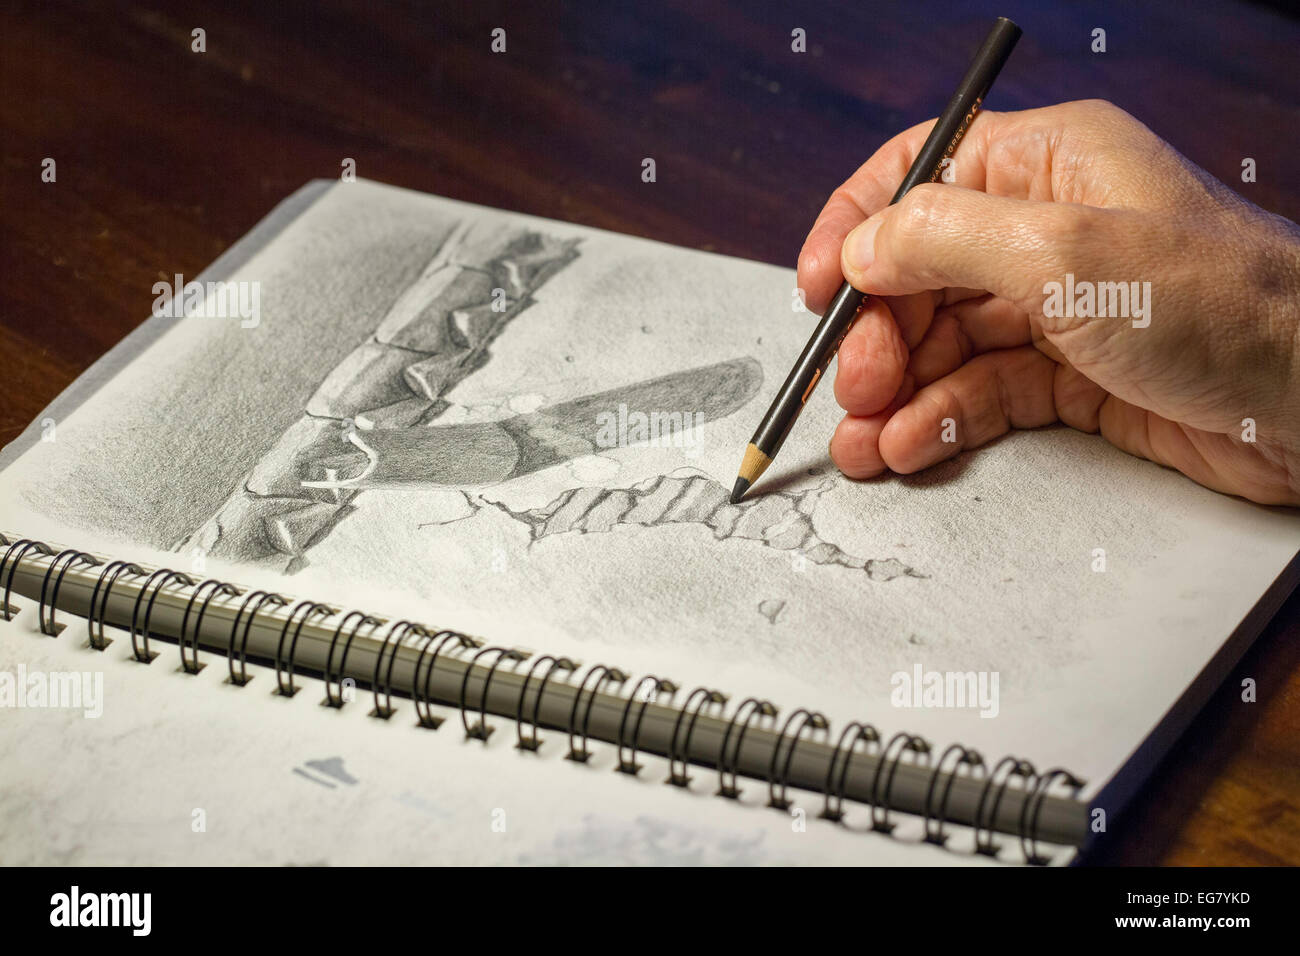 Drawing Using Lines : Artist using pencil on paper to draw a picture lines and stock